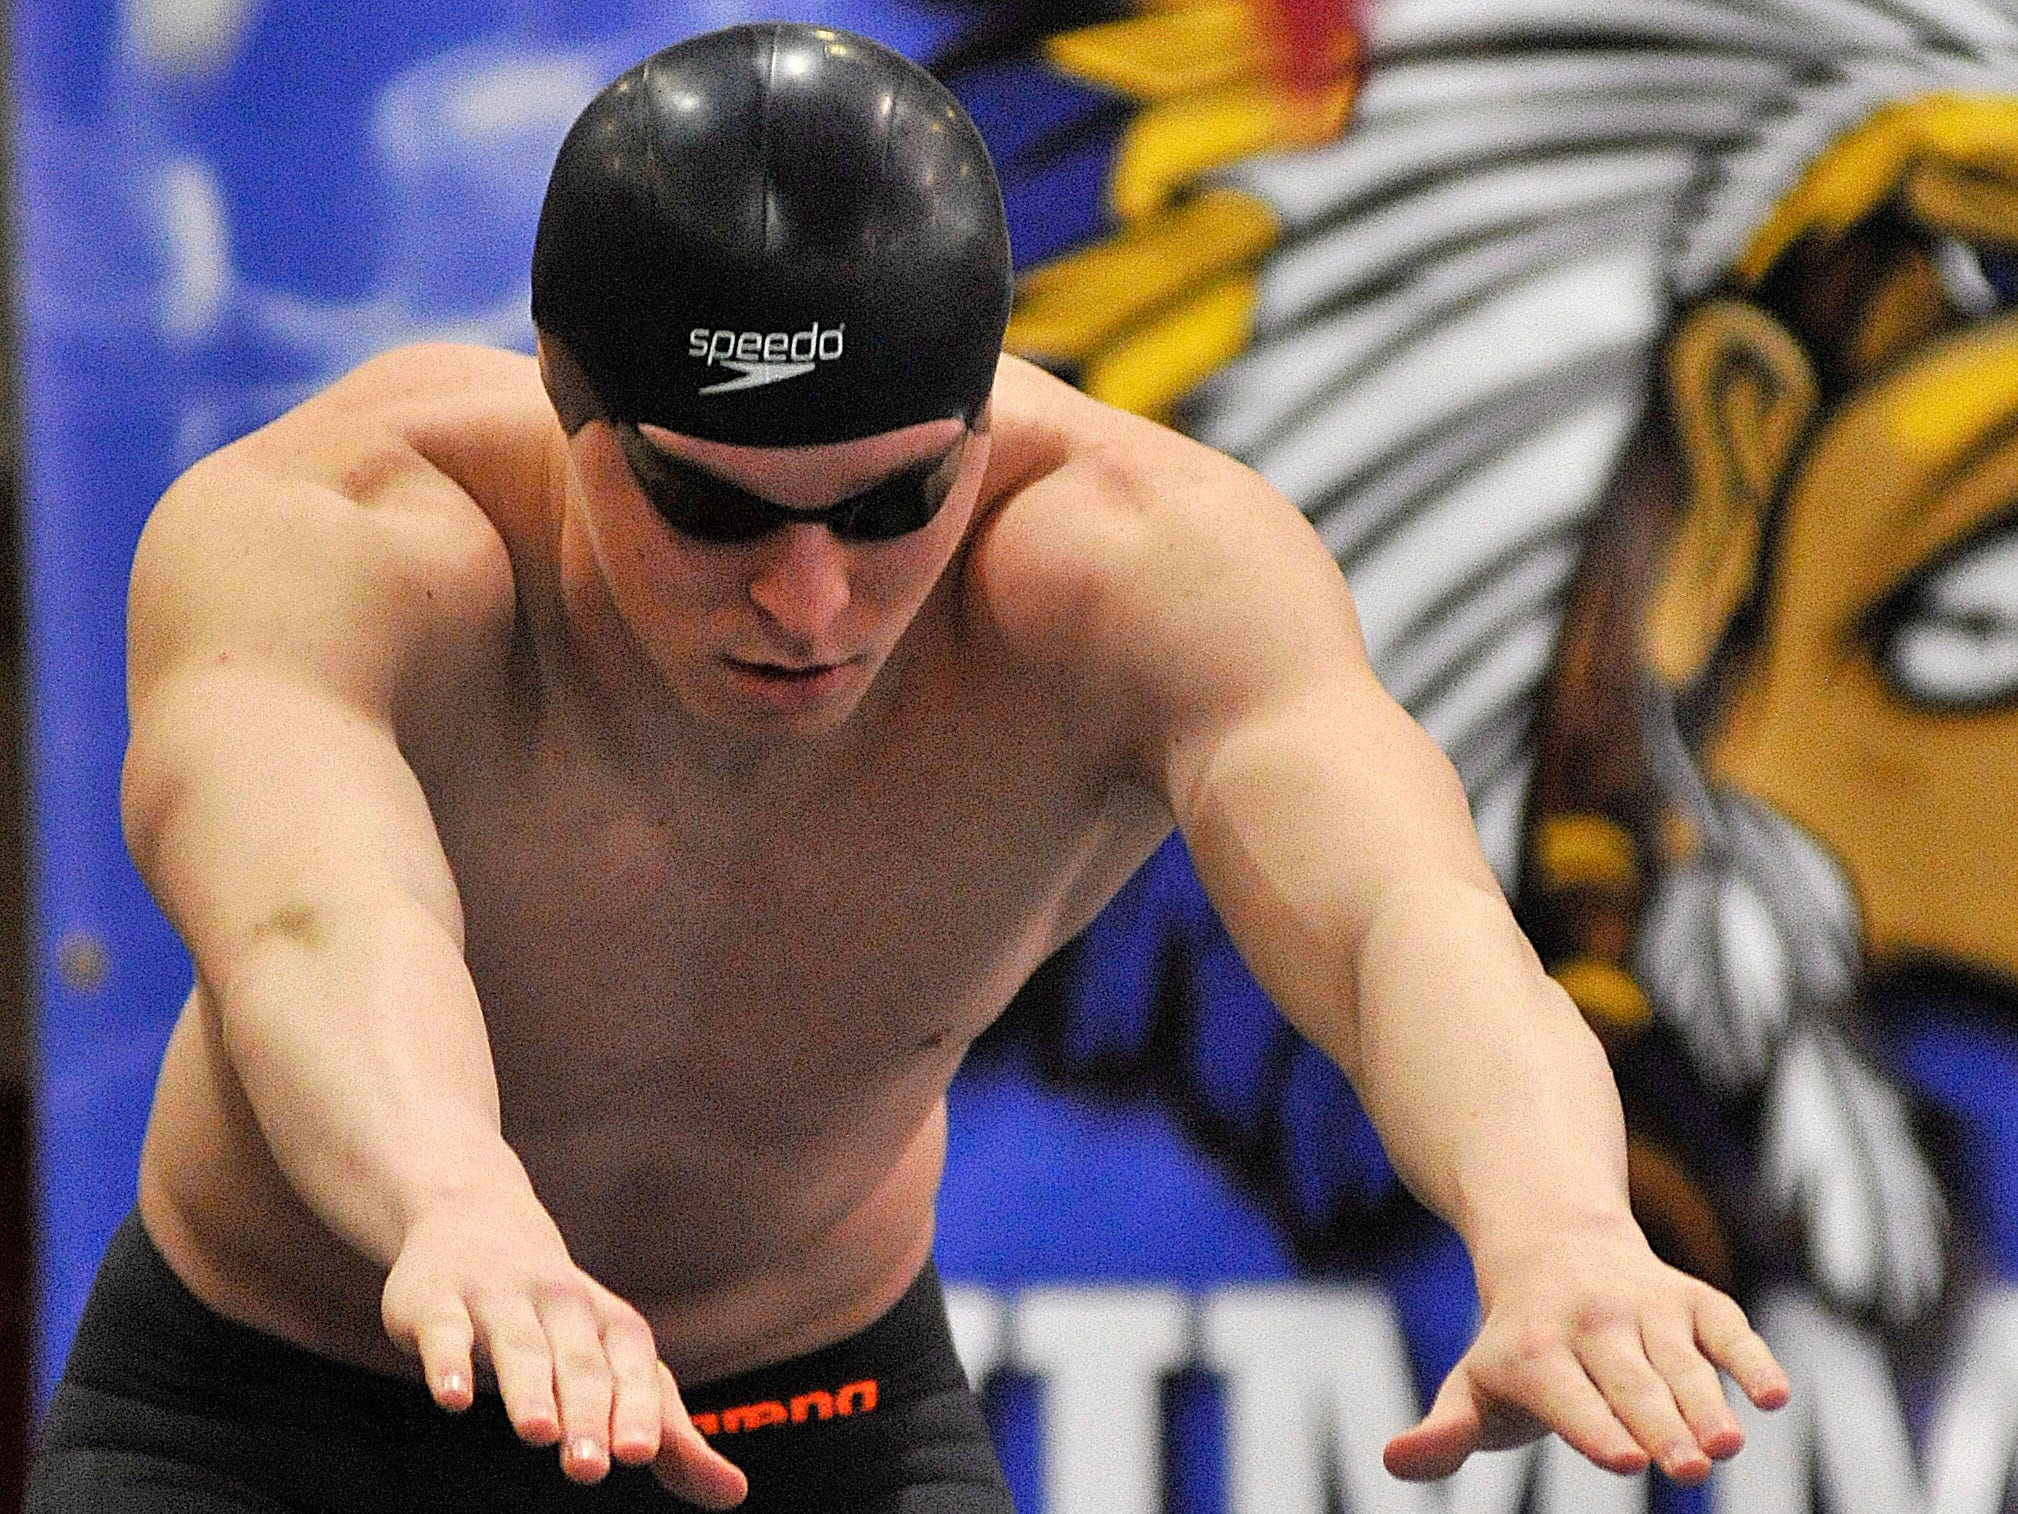 Galion's Sam DeNero readies for the anchor leg of the 200-yard free relay in Thursday's Division II state meet. DeNero has the second-fastest time going into the finals of the 50 freestyle.